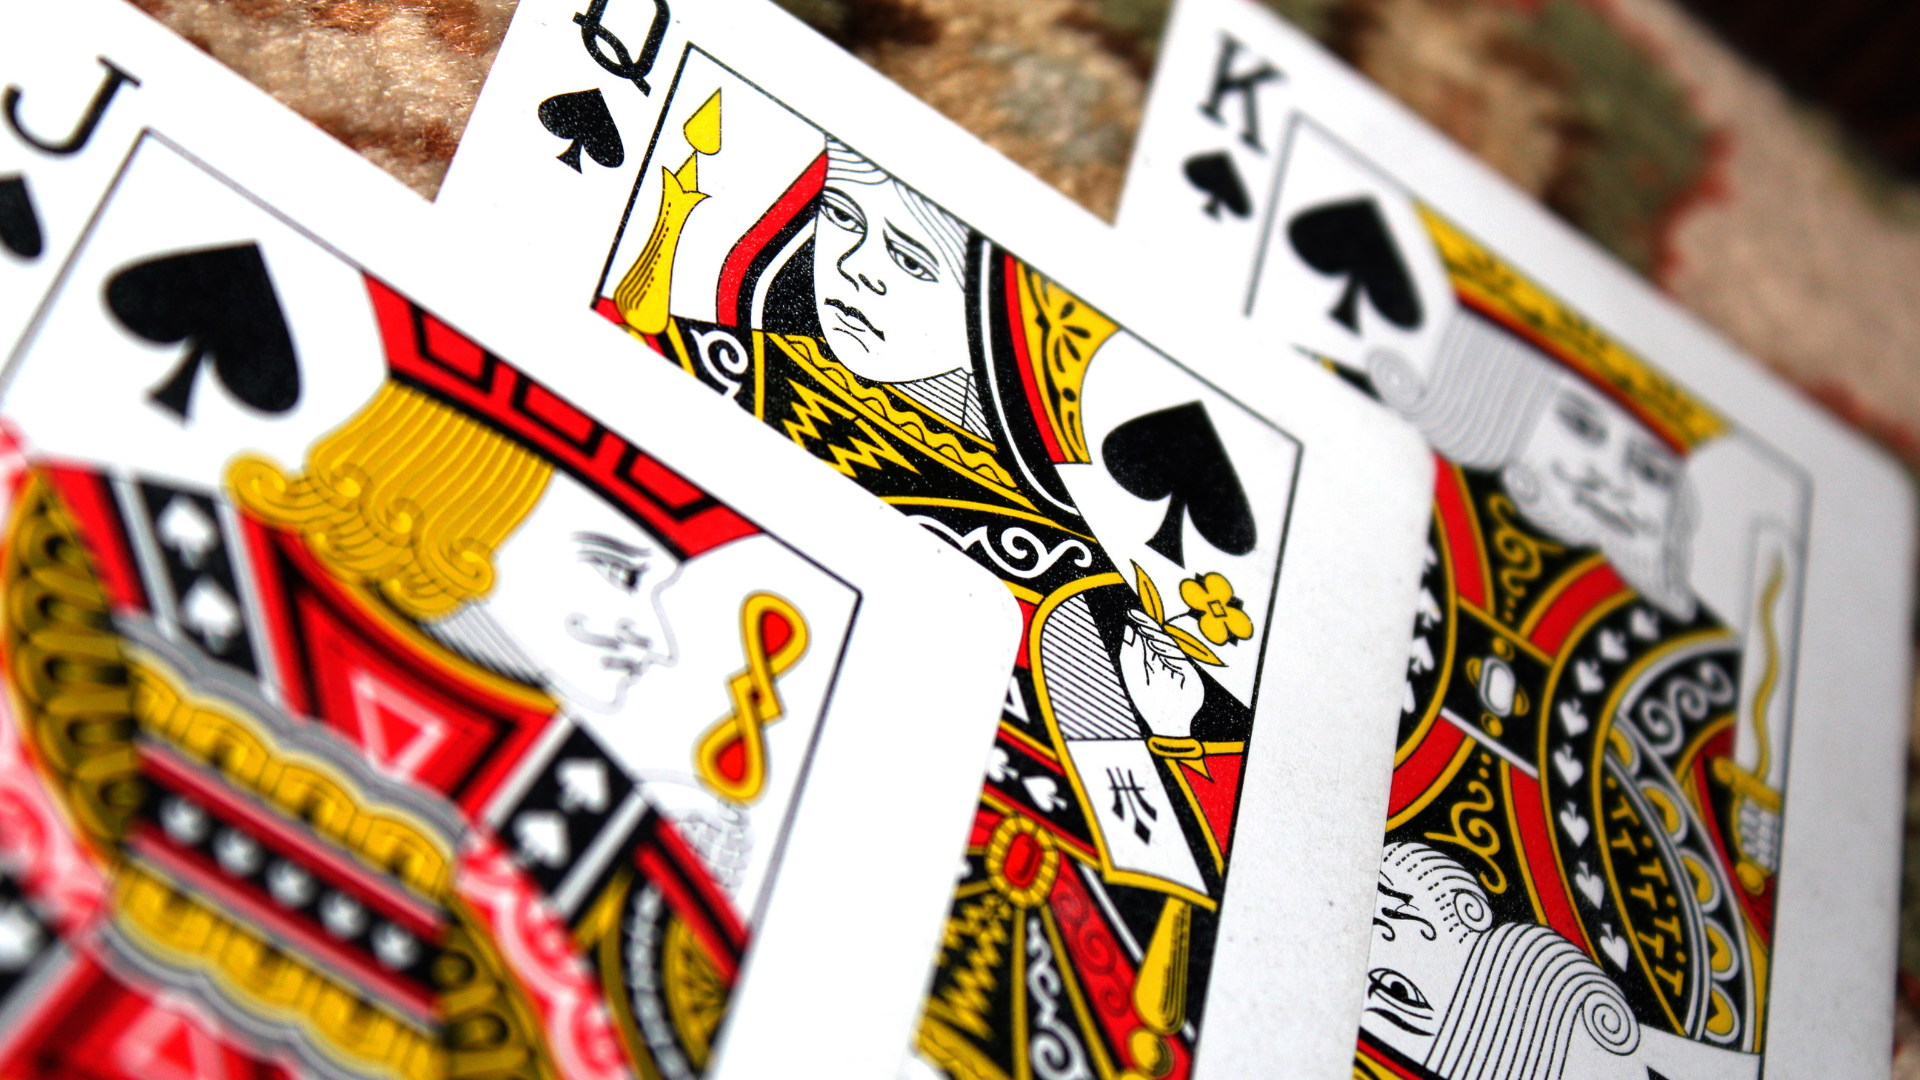 Resource management lessons from the freecell card game | PMWorld 360 Magazine